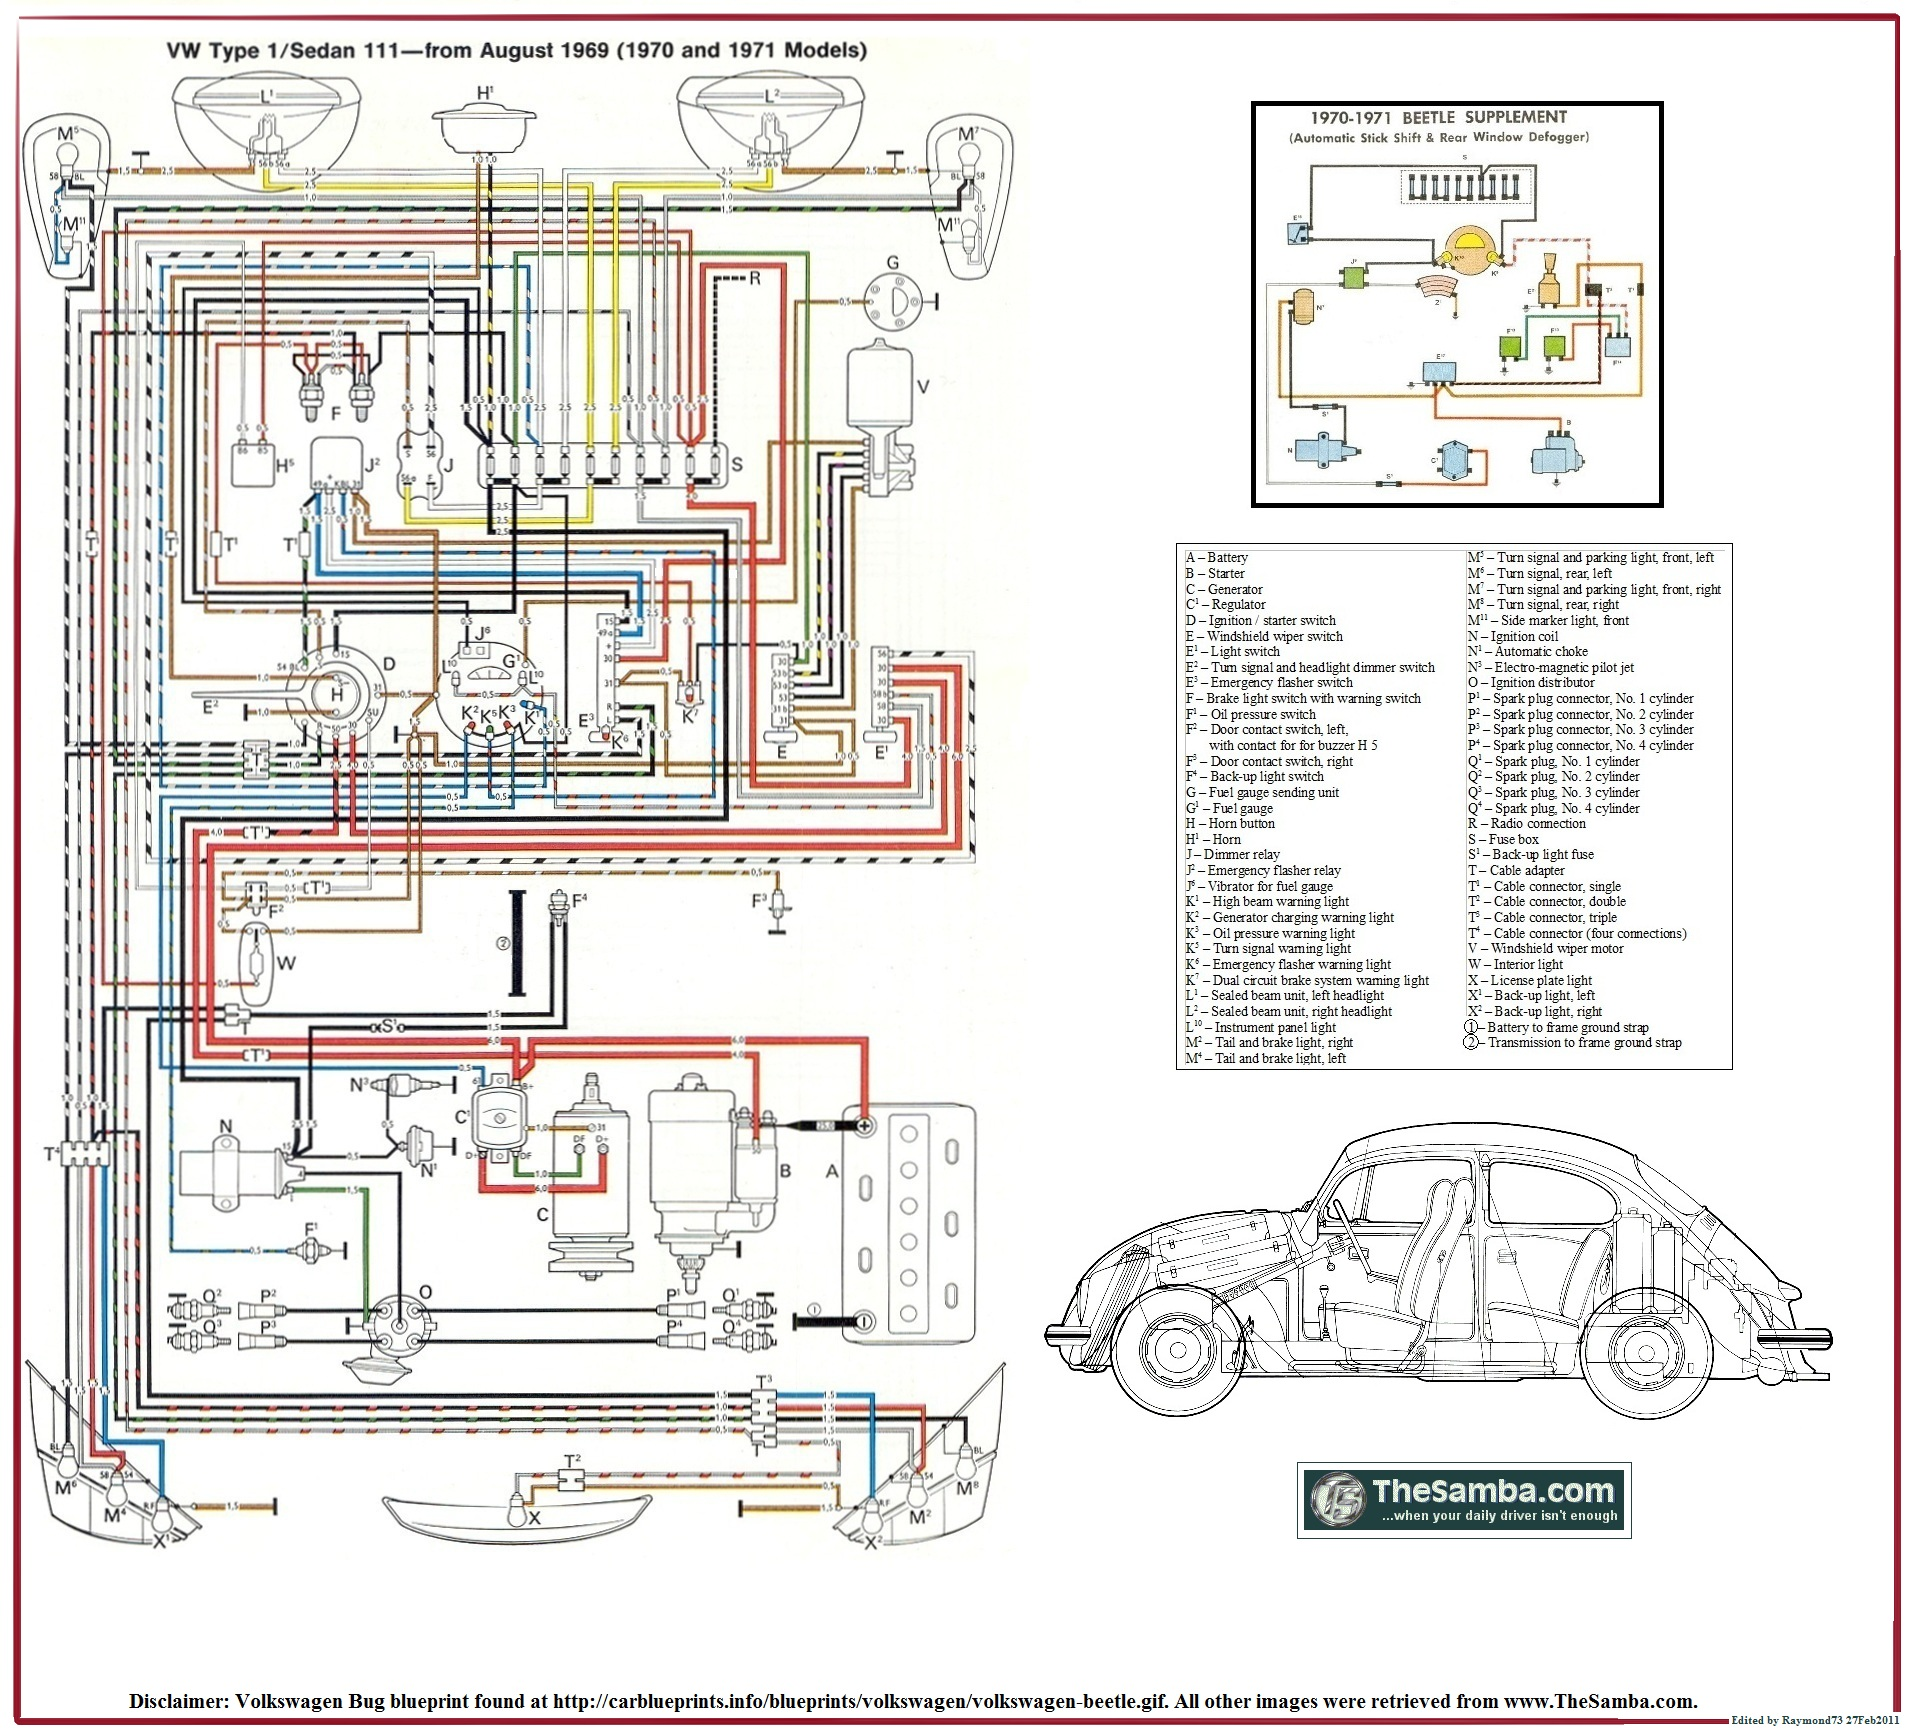 1970_VW_Type_1_Poster 1970 vw beetle wiring diagram 1967 vw beetle wiring diagram 68 VW Wiring Diagram at mifinder.co